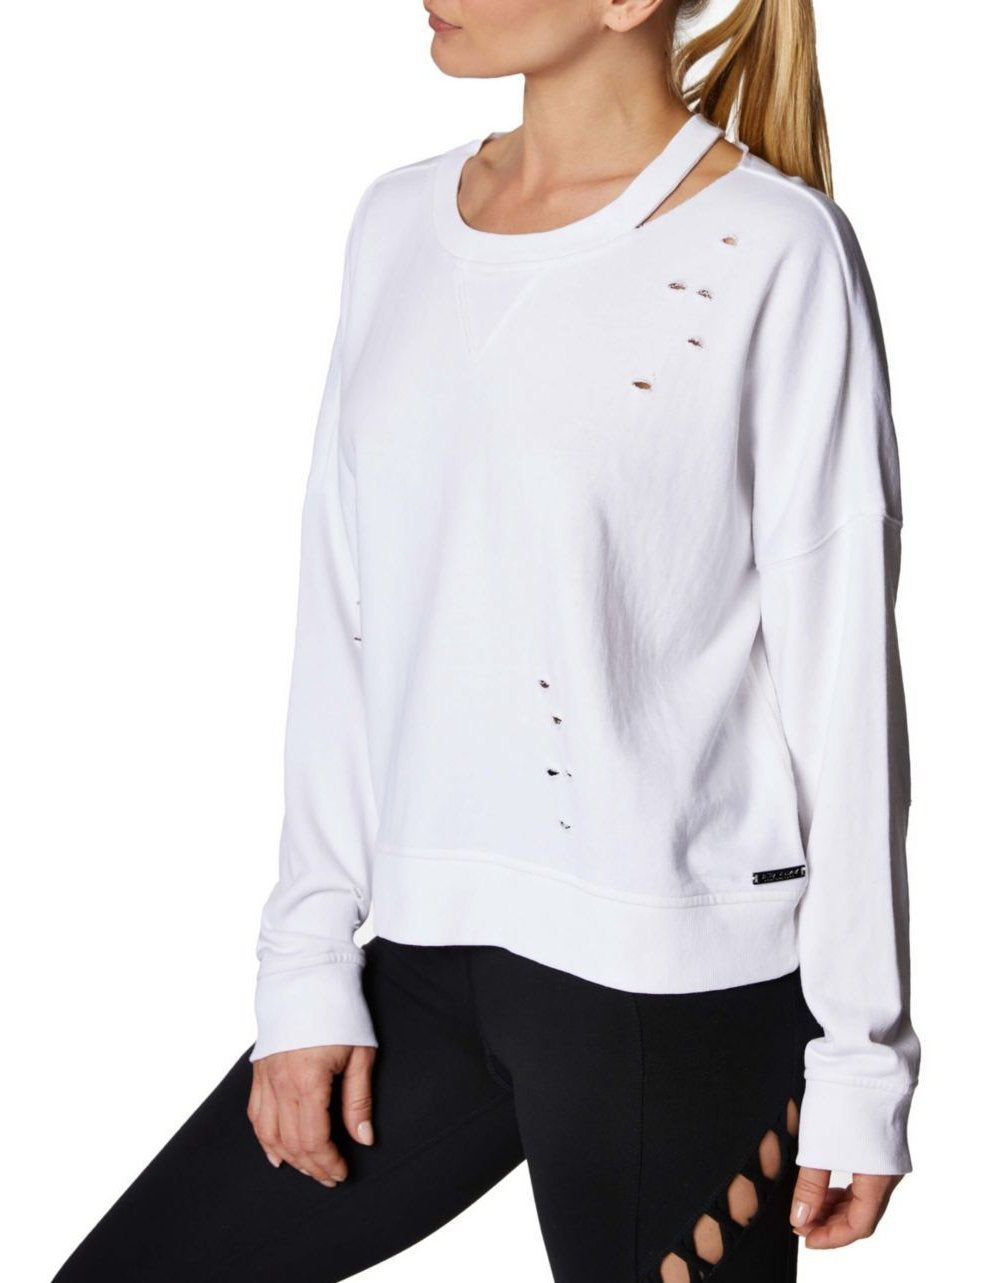 DISTRESSED FRENCH TERRY PULLOVER WHITE - APPAREL - Betsey Johnson